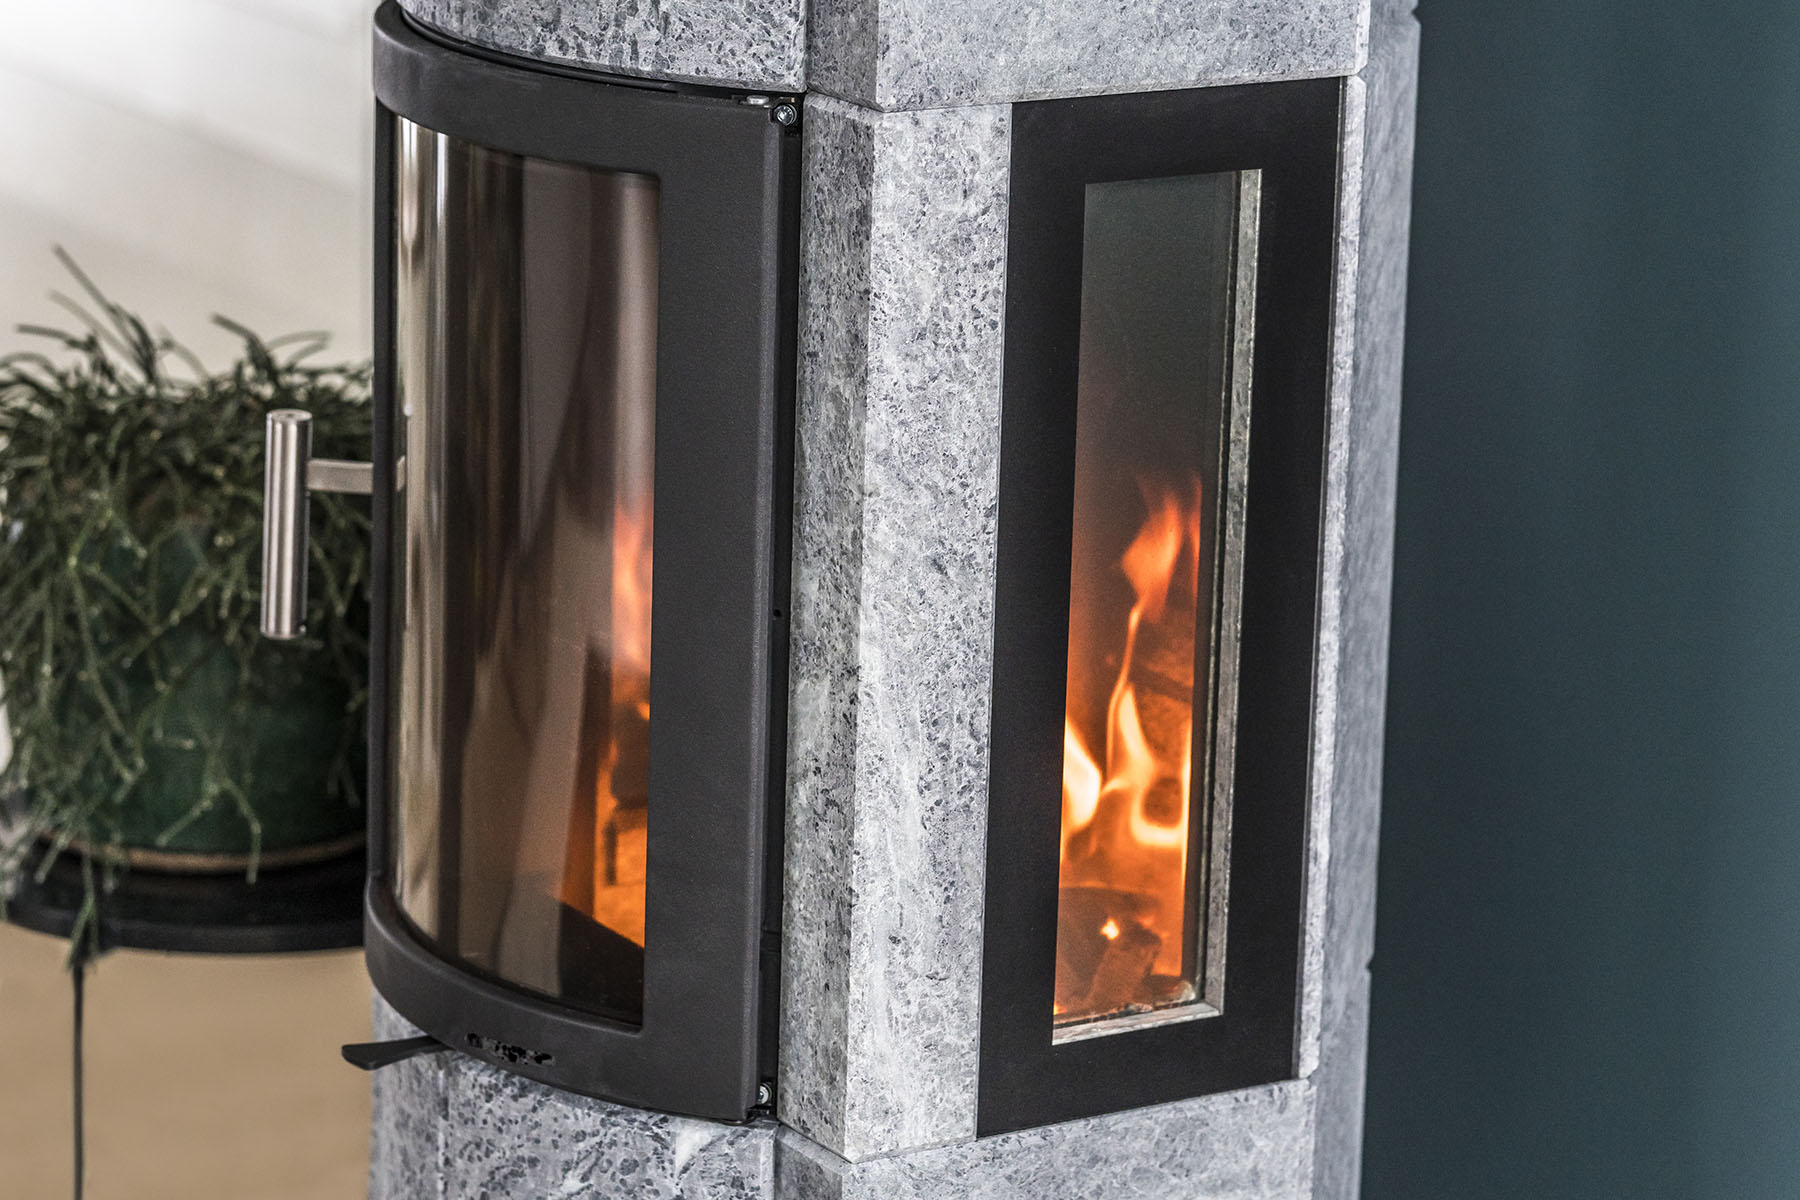 The Merethe models have smart details, such as the skilful meshing of the rounded stone at the front of the stove with the side stone.